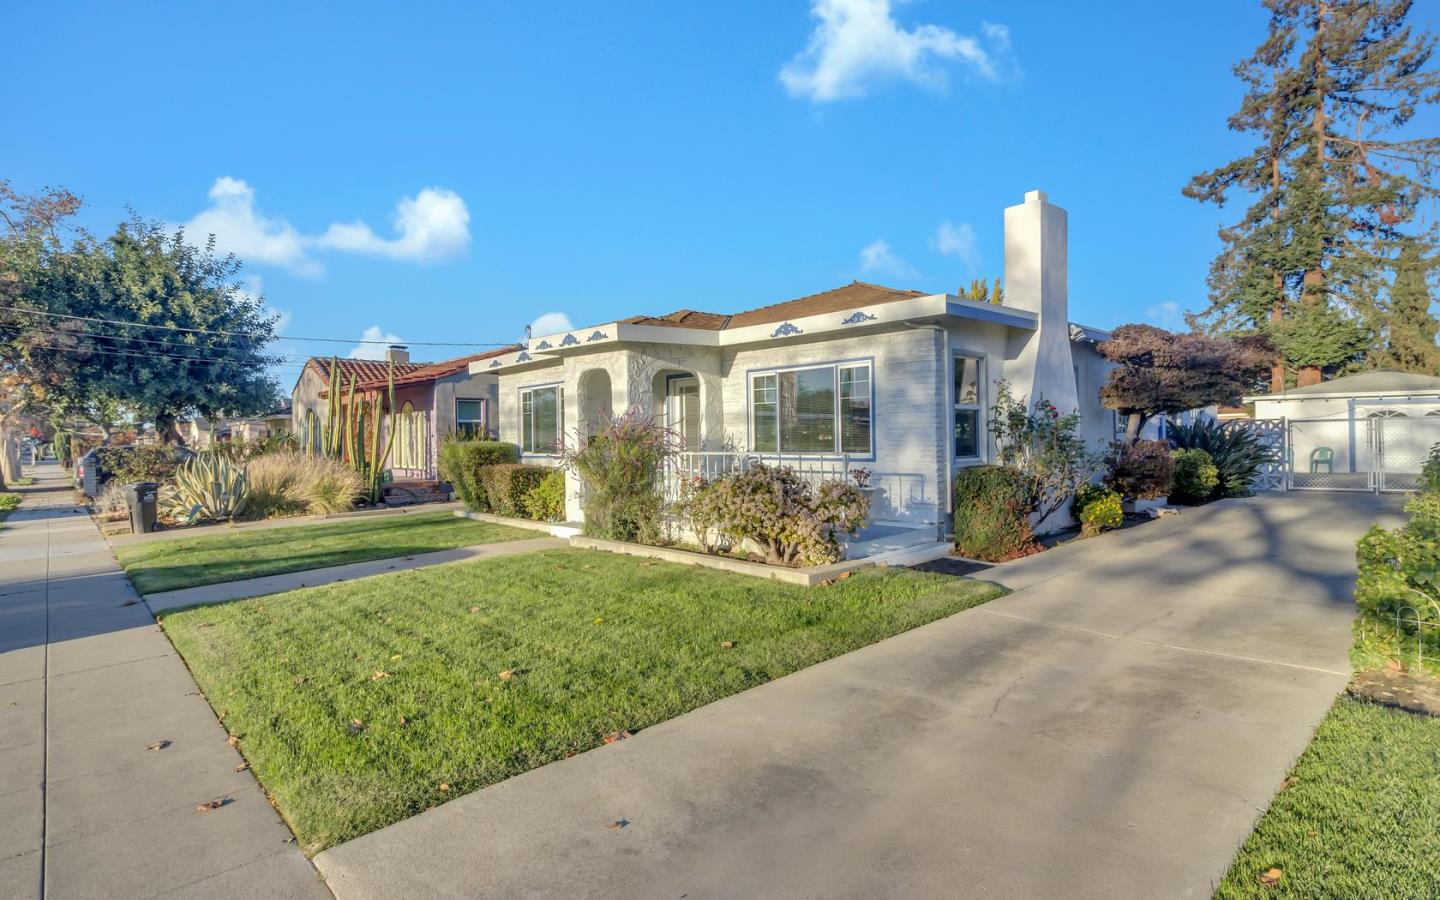 Additional photo for property listing at 854 N 4th Street  San Jose, California 95112 United States